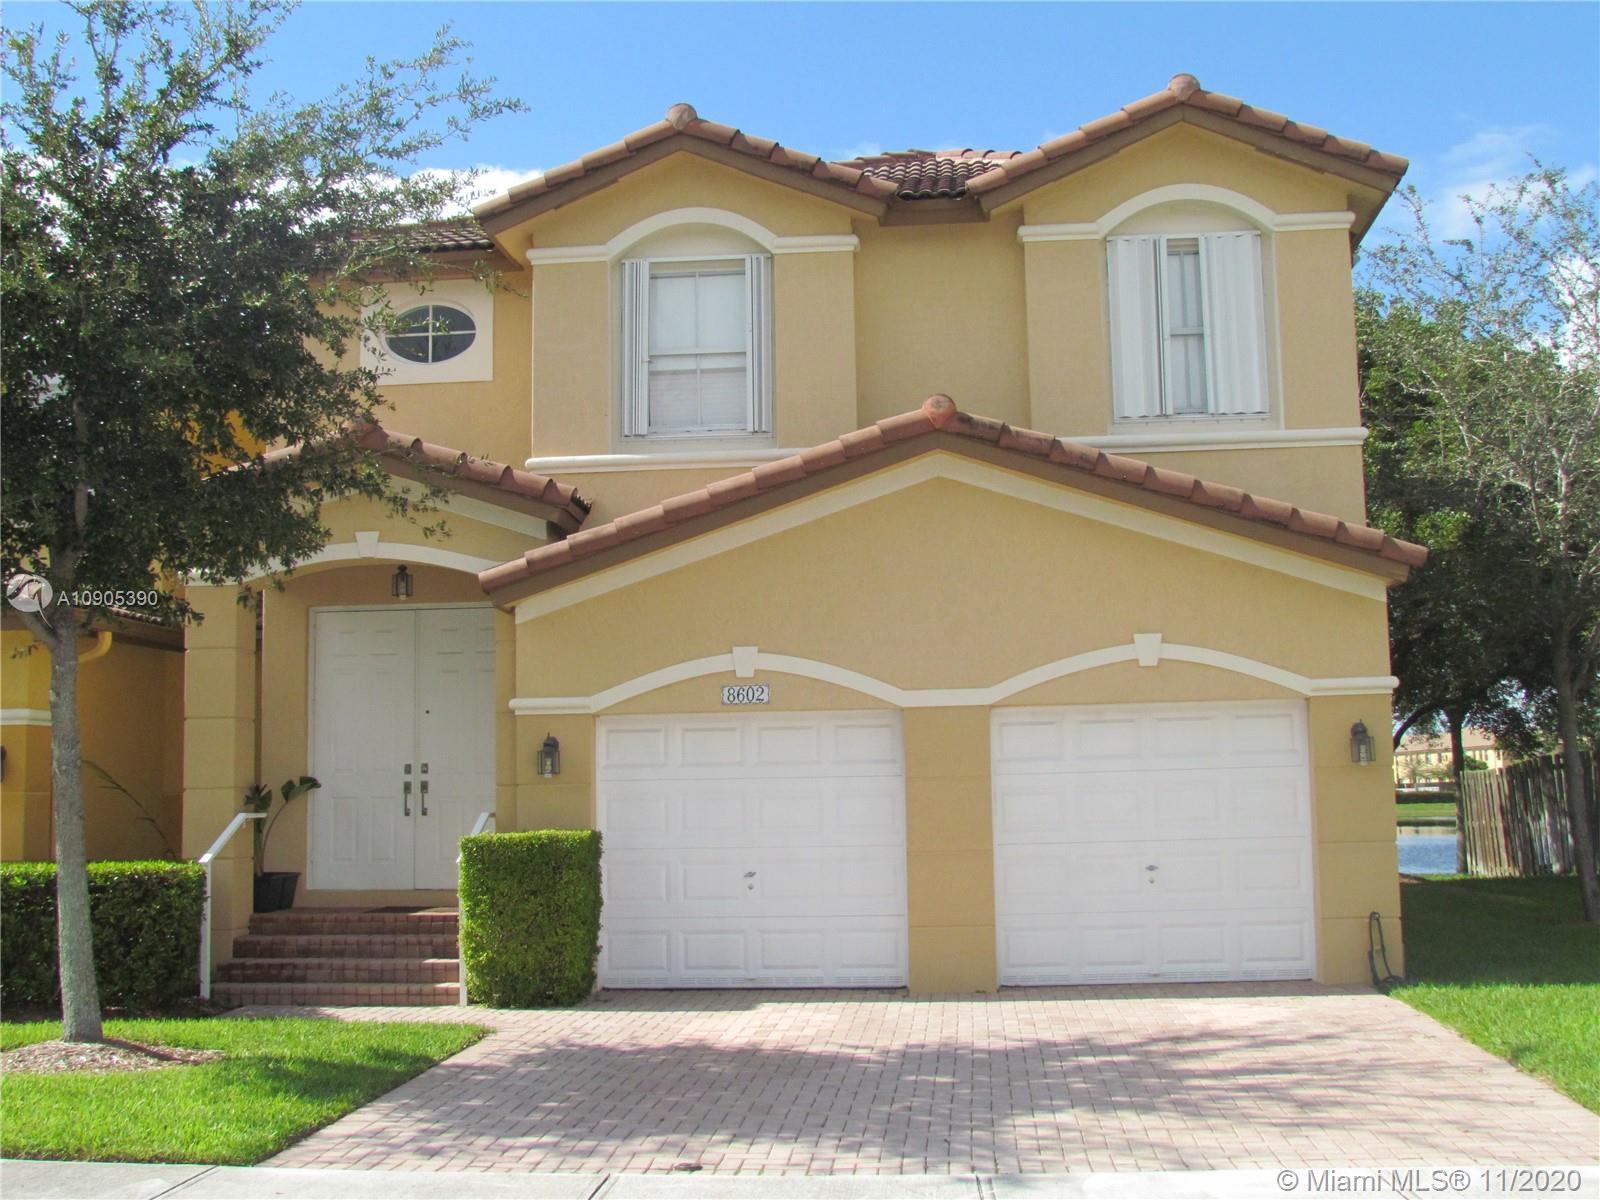 Islands At Doral - 8602 NW 114th Ct, Doral, FL 33178